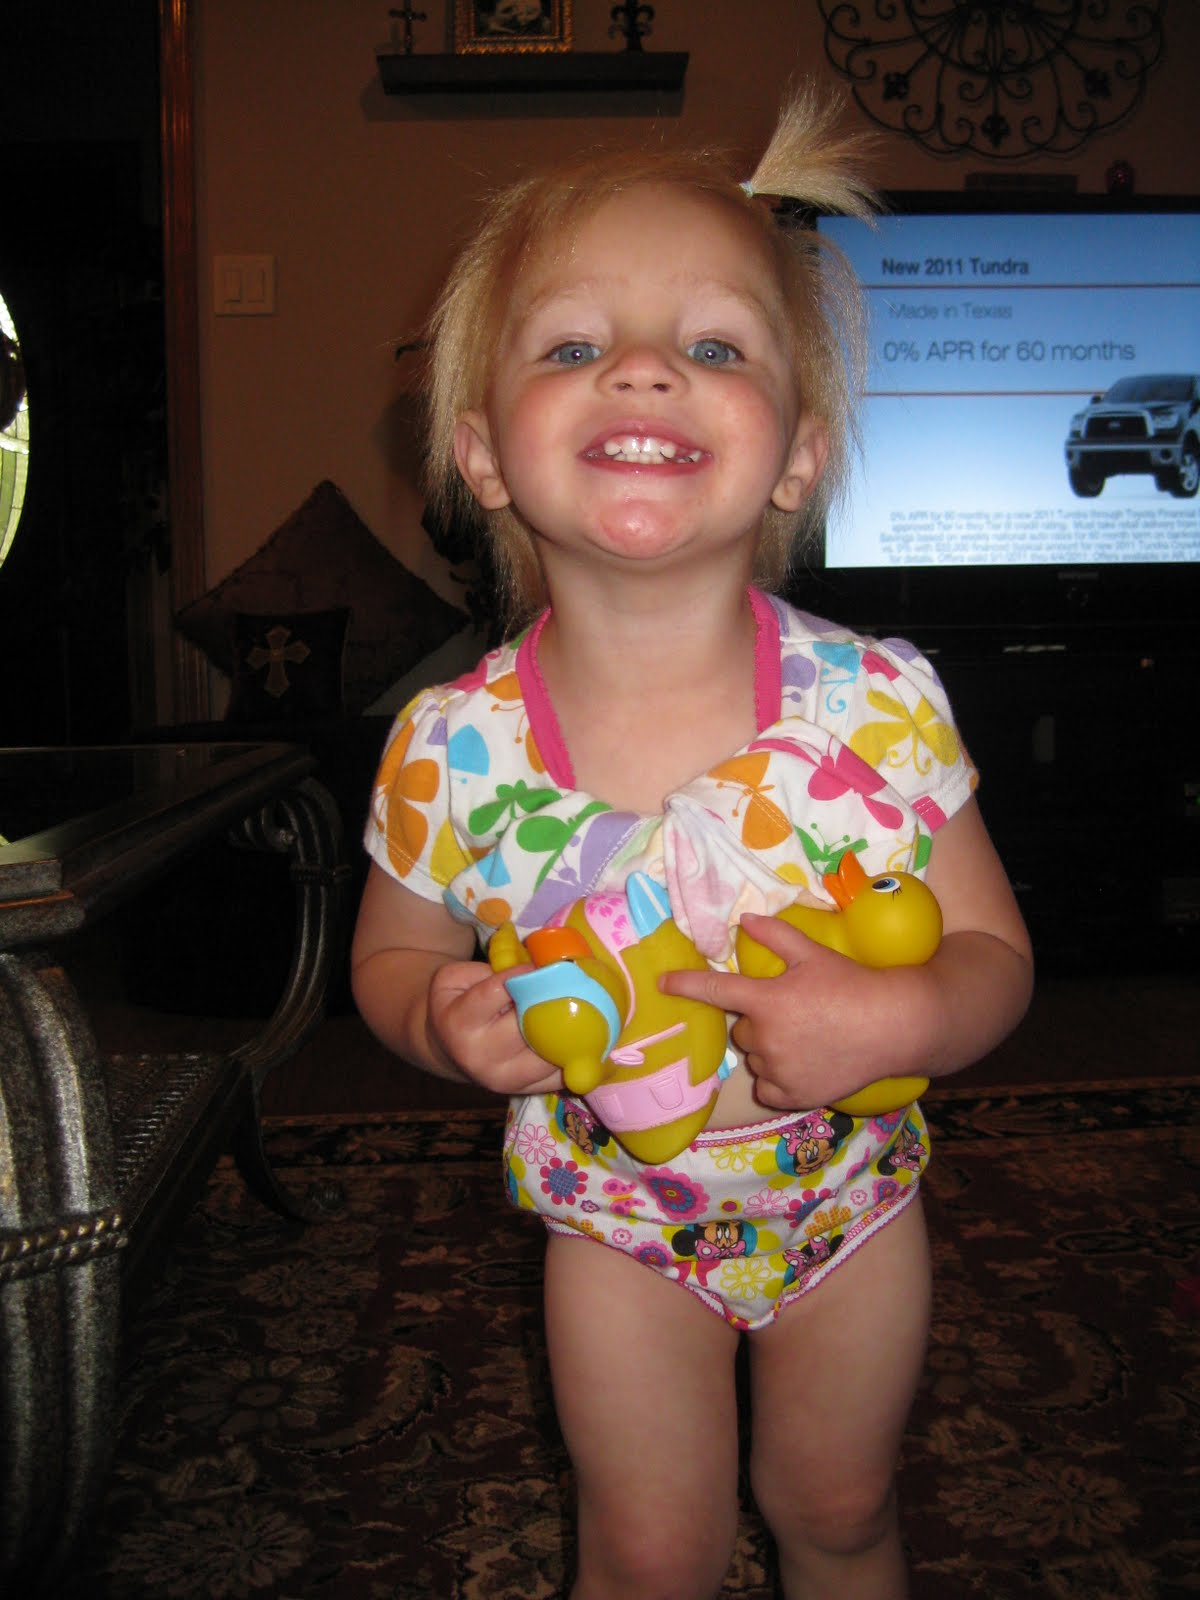 Potty Training in One Day? Its worth a try in my opinion